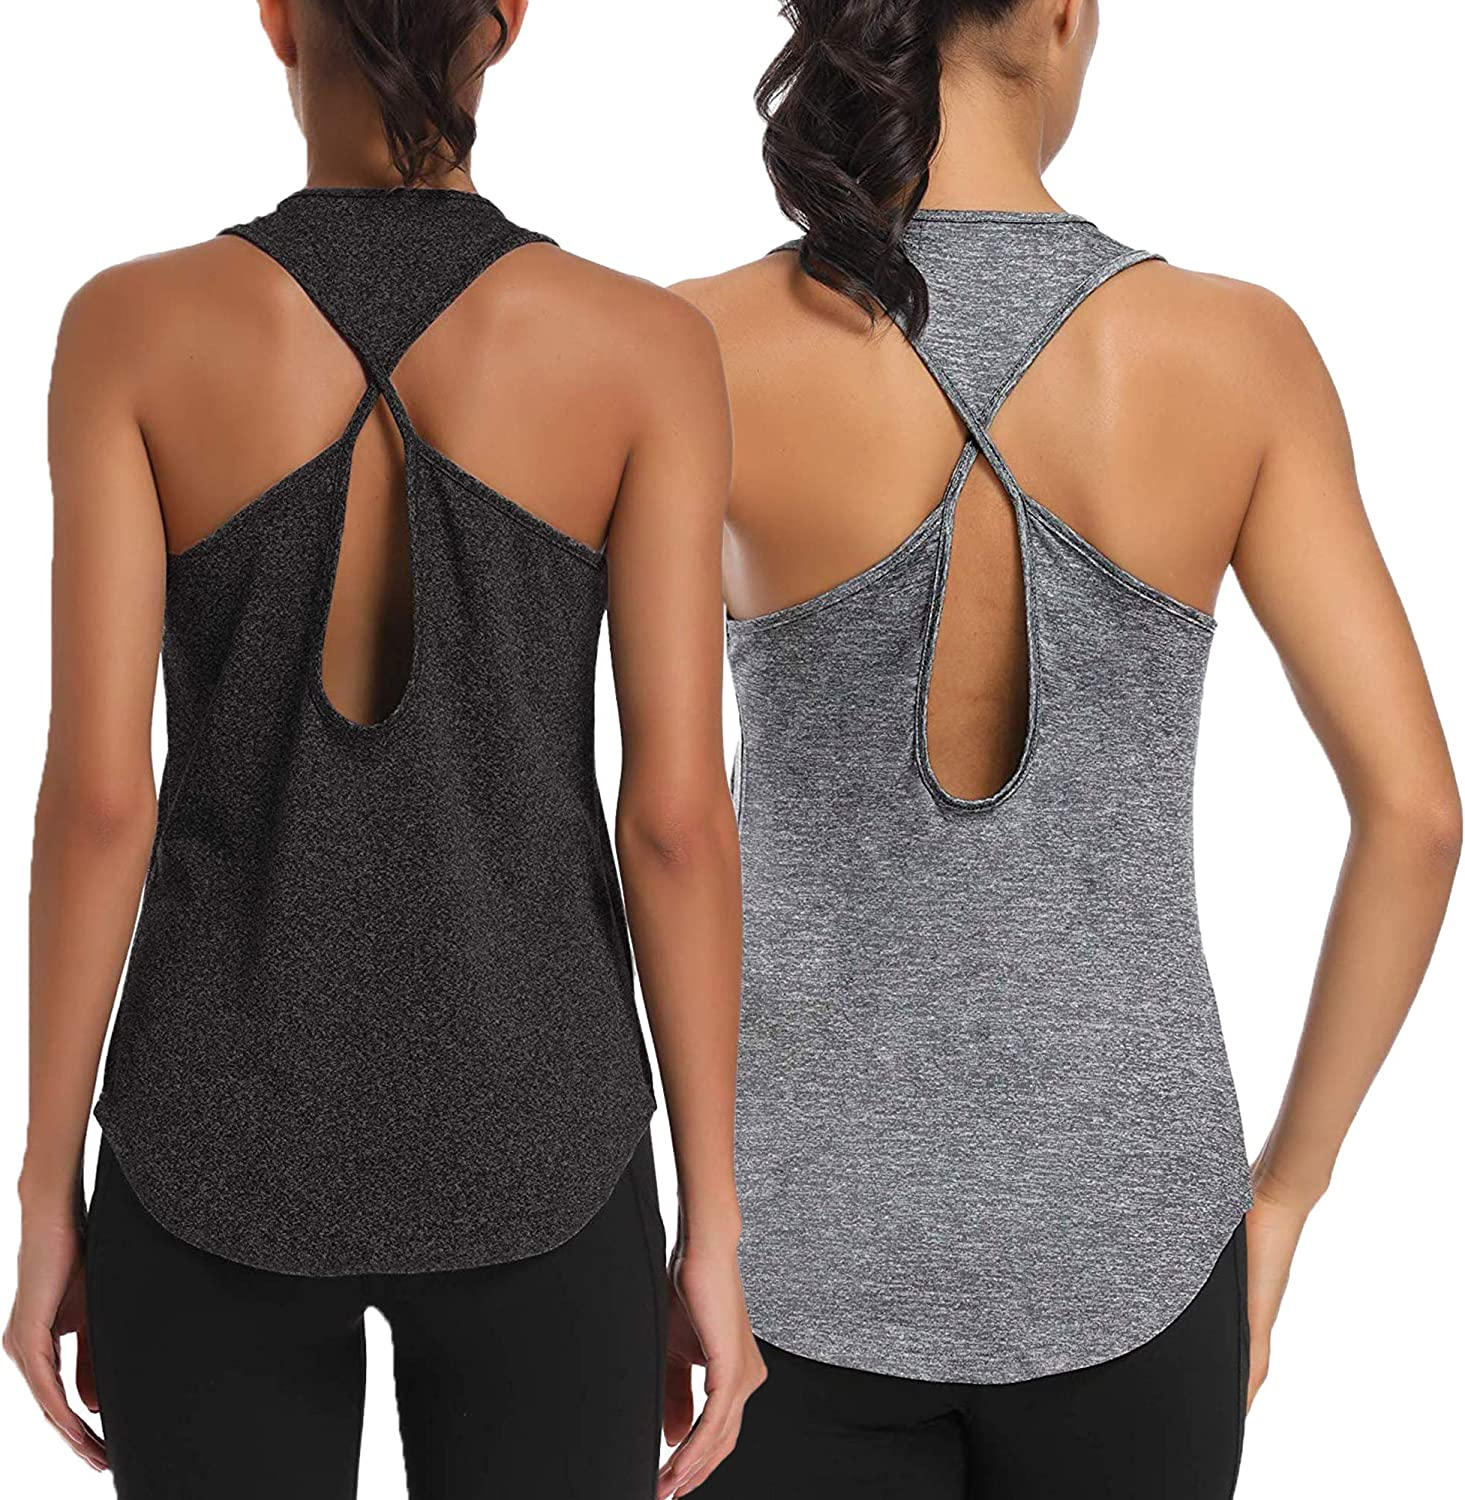 Bestshe Womens 2-Pack Workout Tops Backless Yoga Shirts Gym Running Muscle Tank Tops